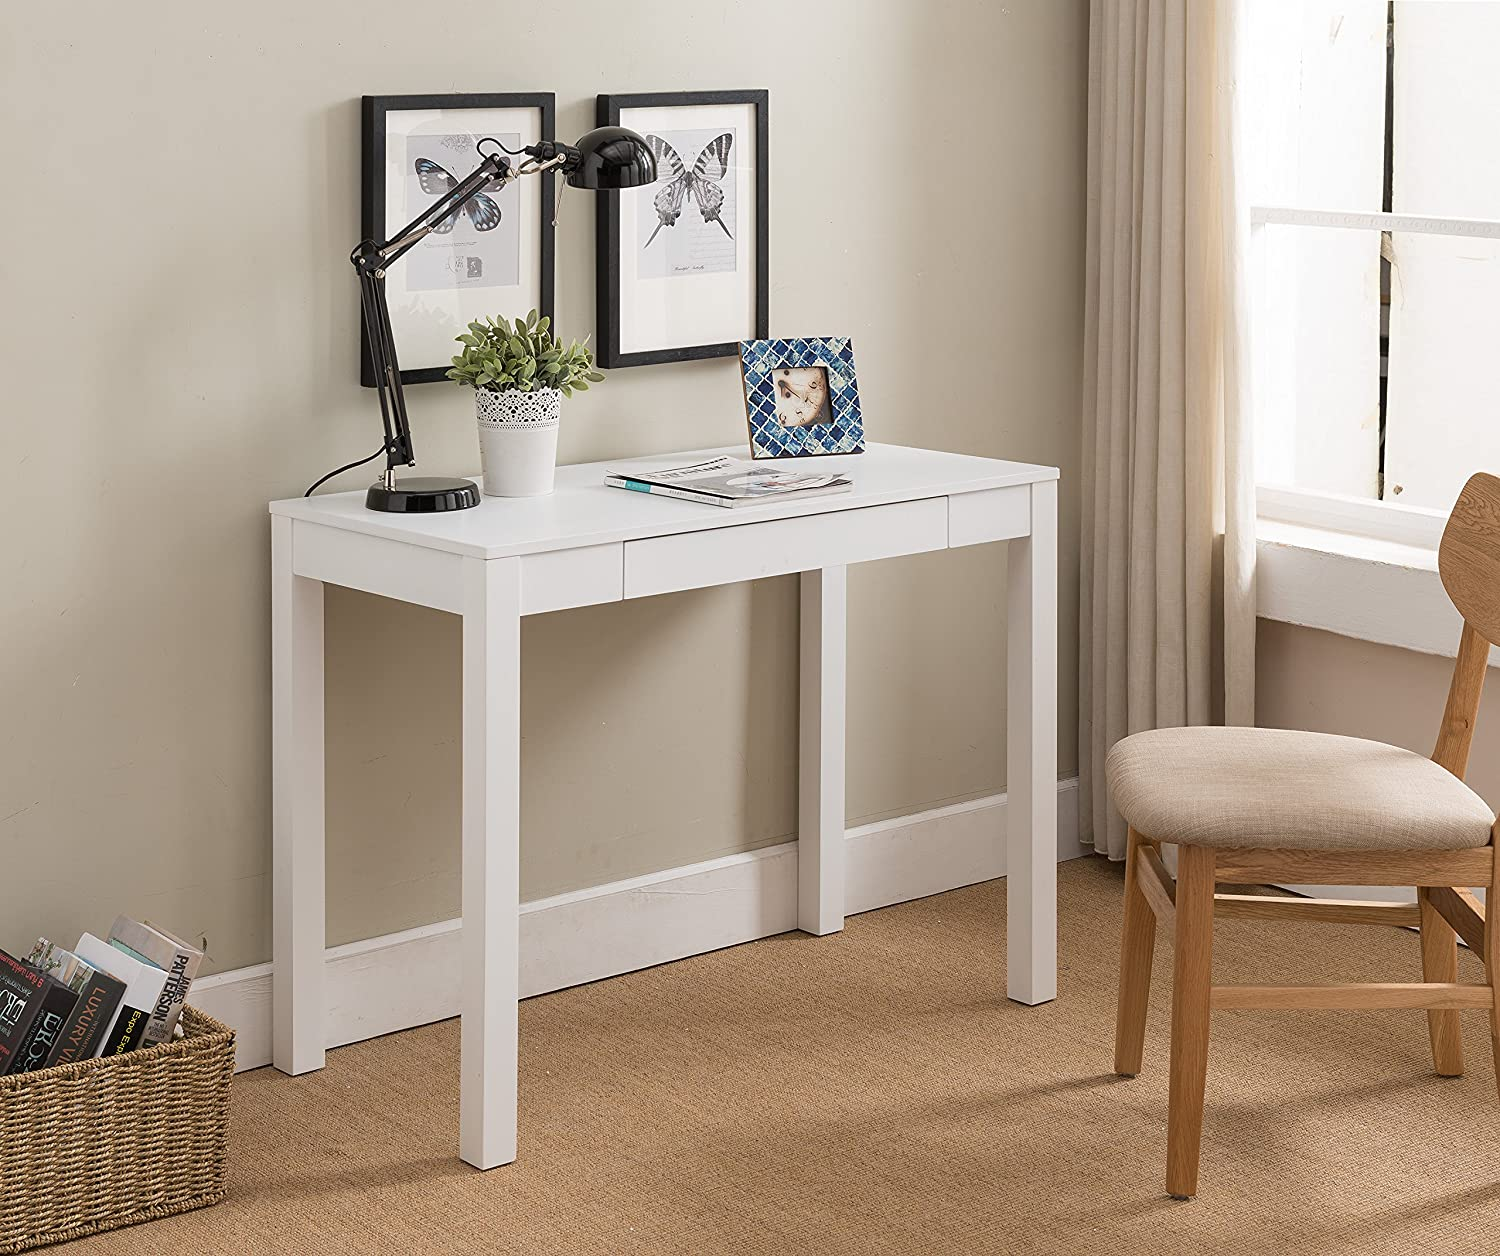 Amazon com kings brand furniture white finish wood single drawer parsons desk kitchen dining